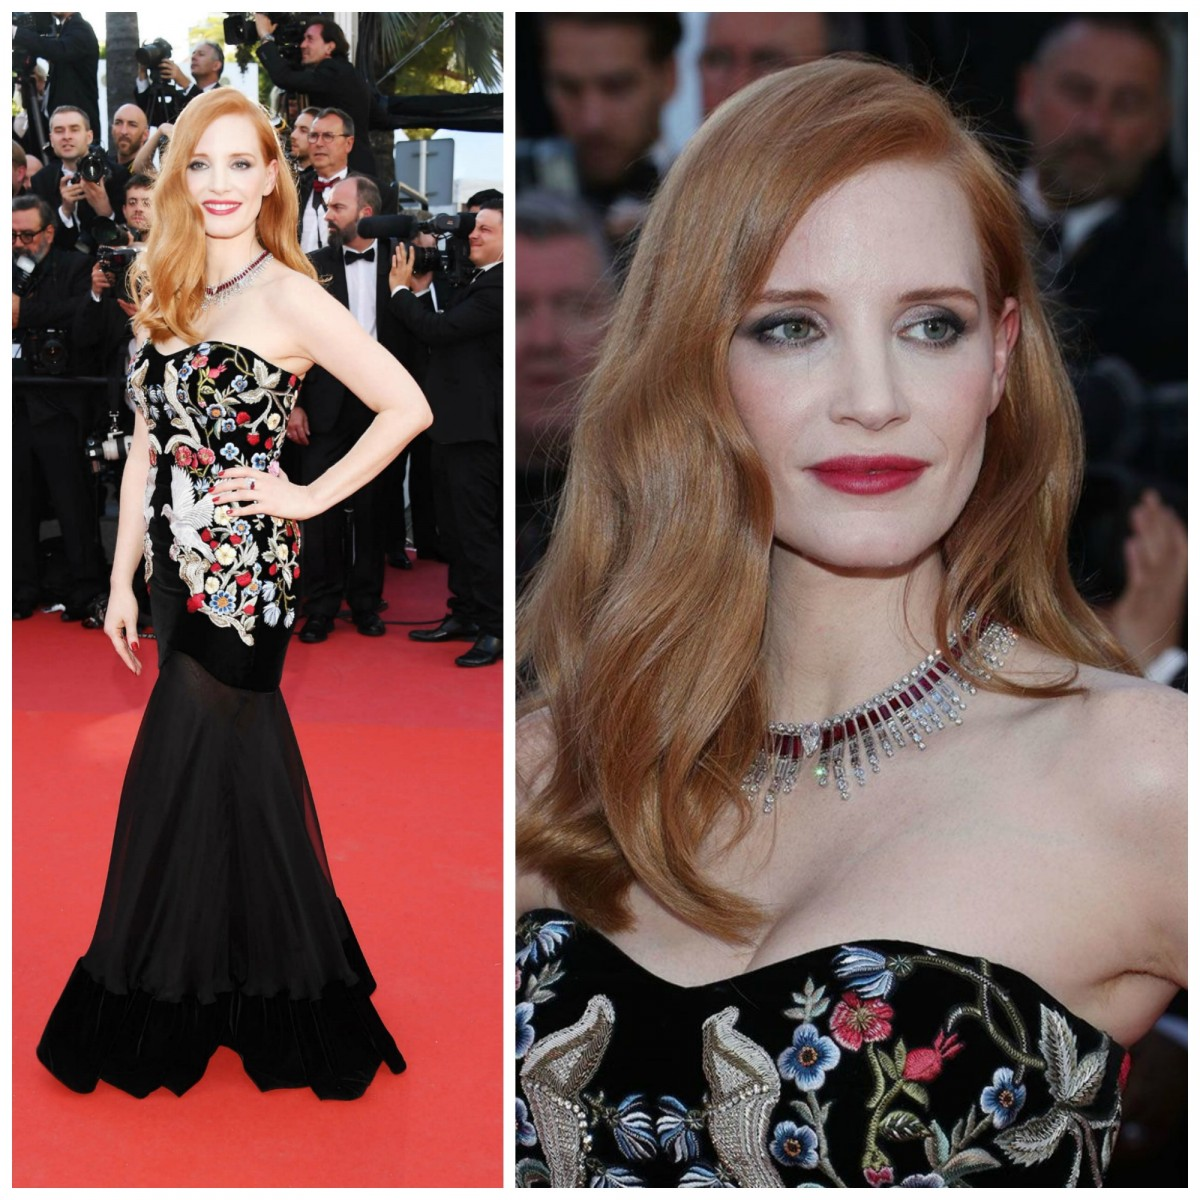 Jessica Chastain Cannes 2017